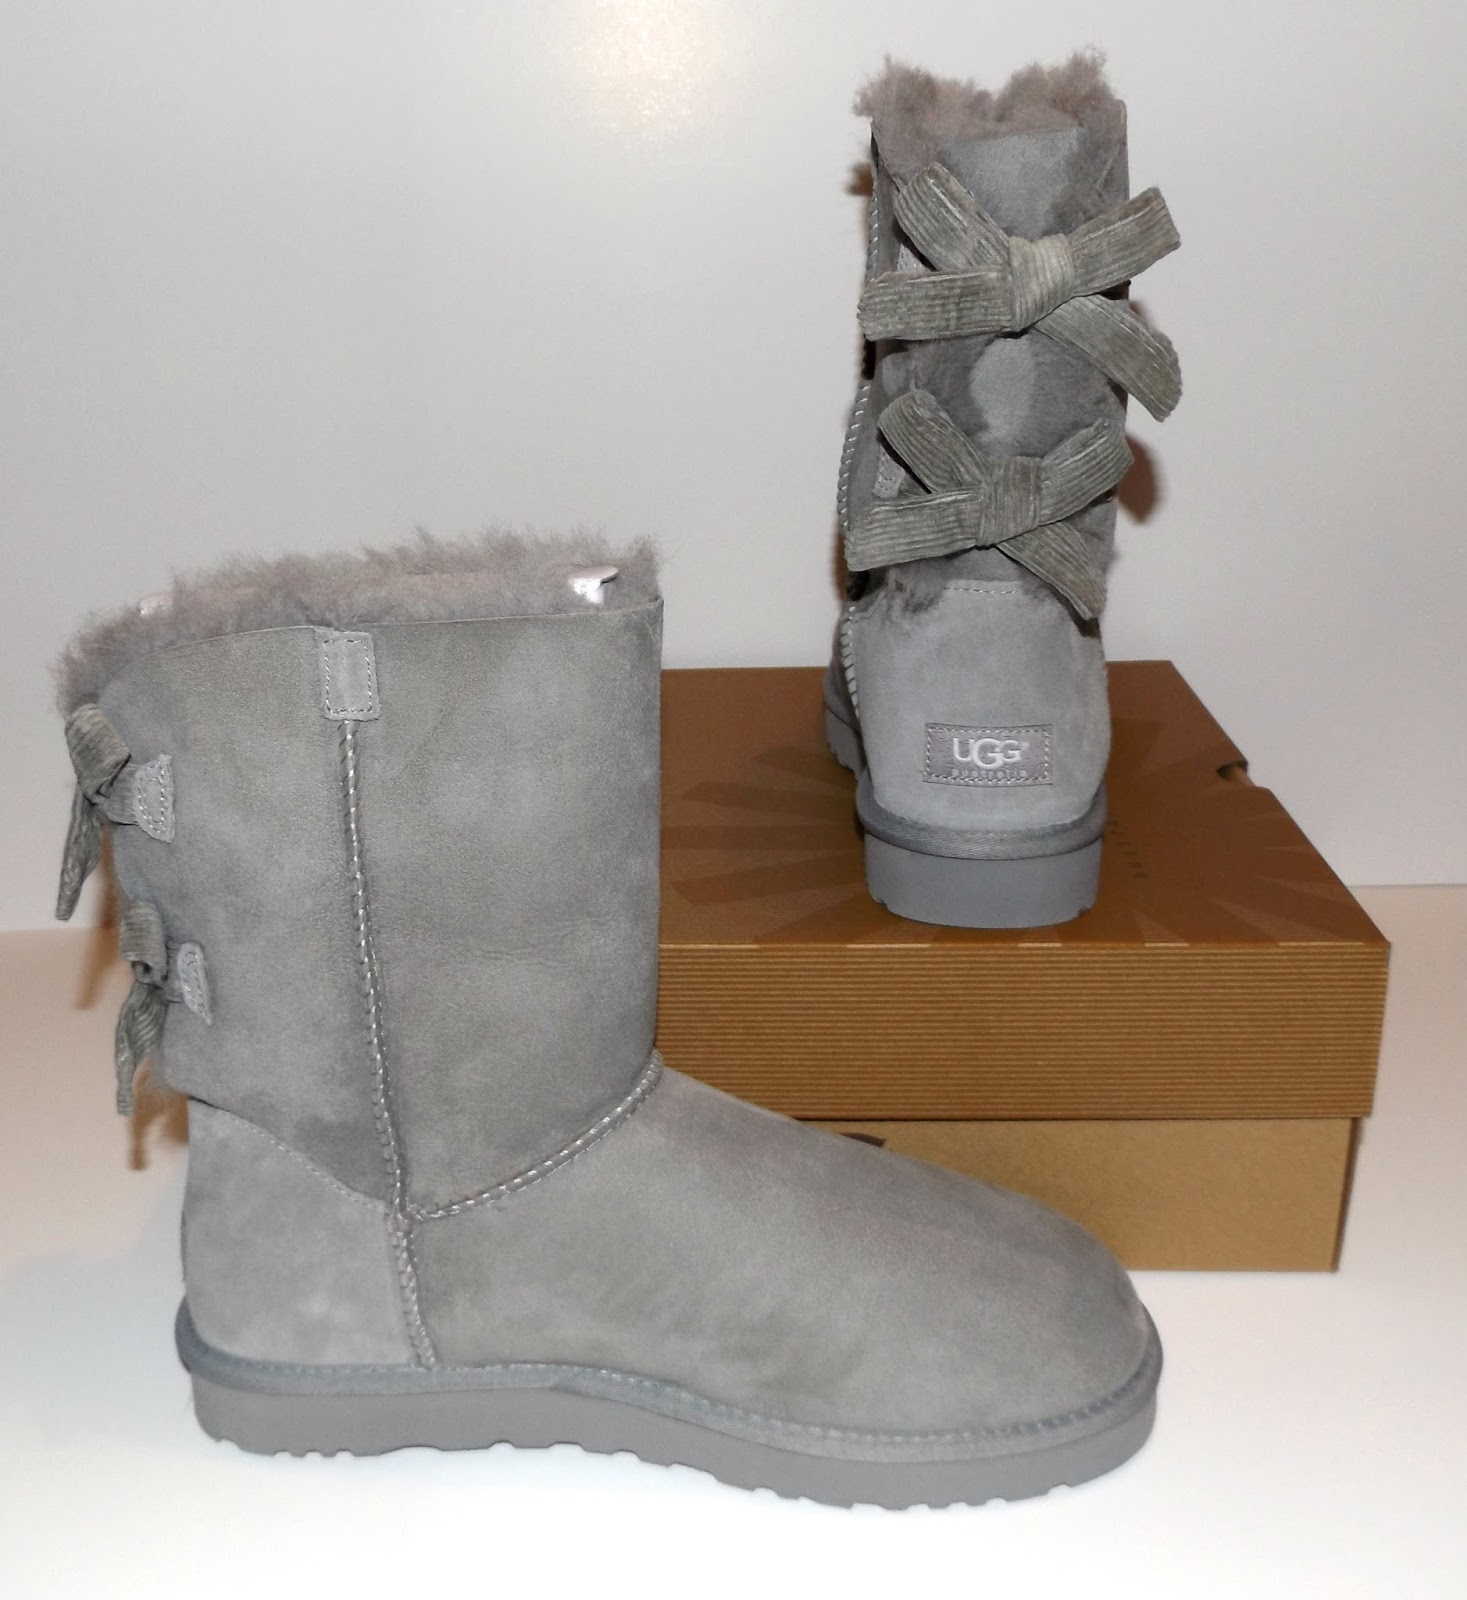 Ugg Bailey Bow Boots Review